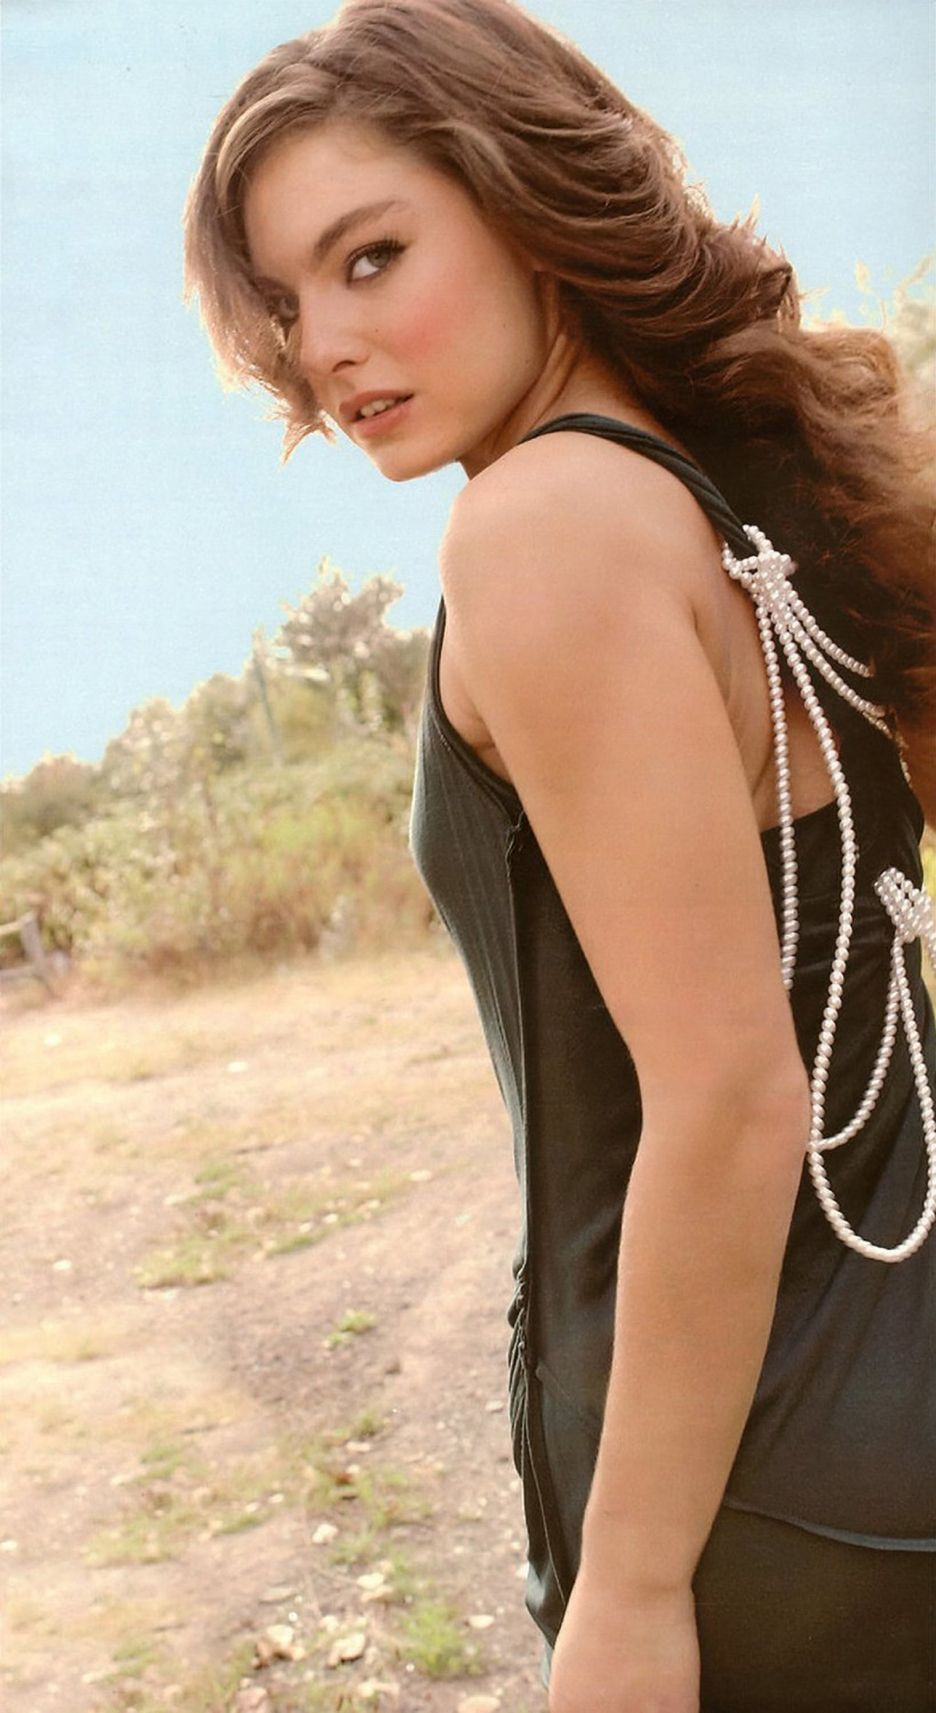 42 Alexa Davalos Nude Pictures Which Make Sure To Leave